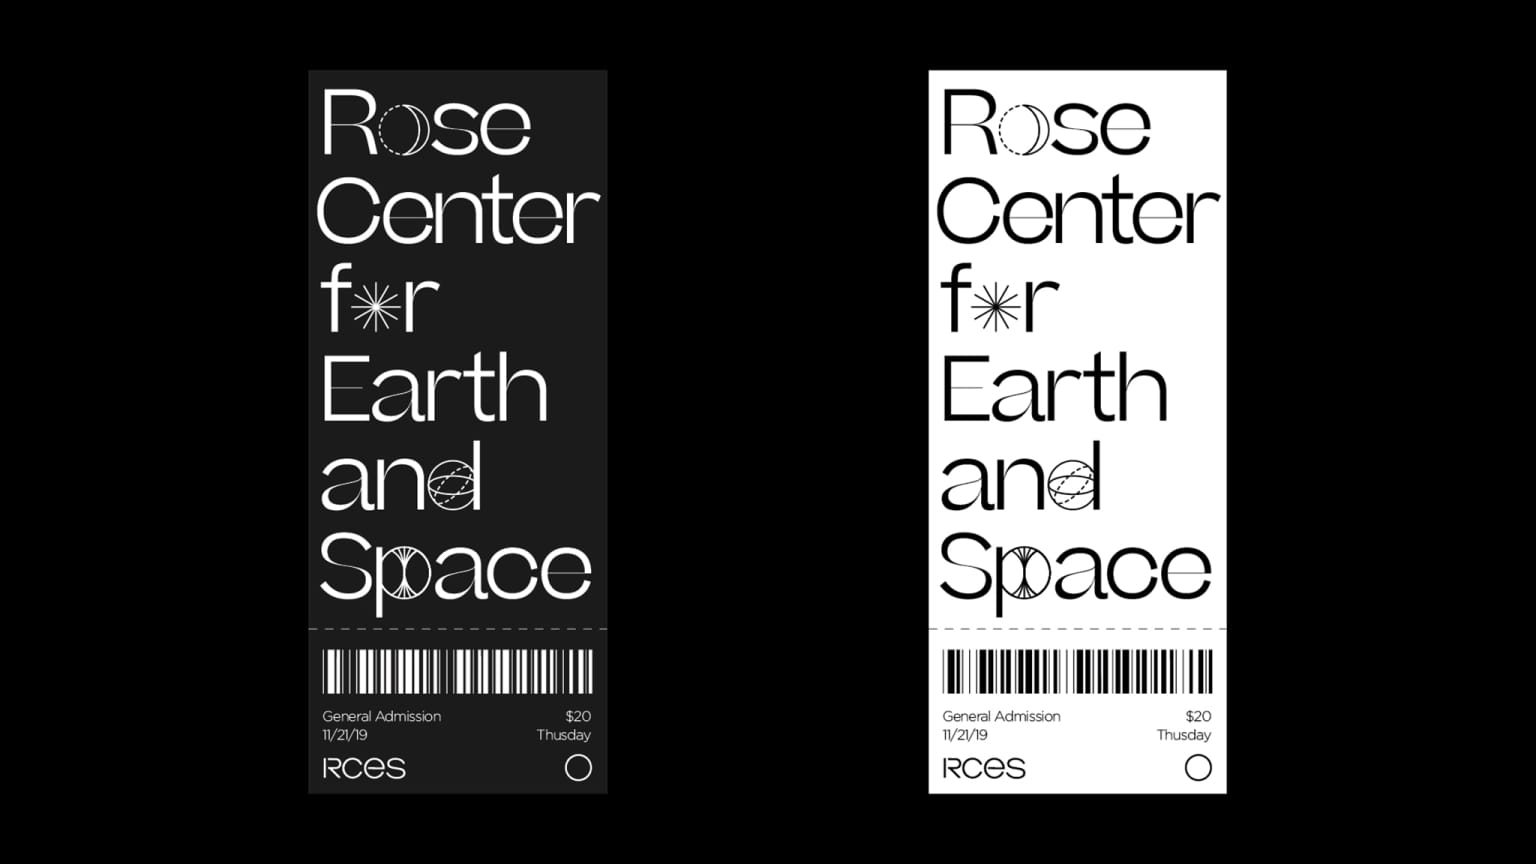 Rose Center for Earth and Space